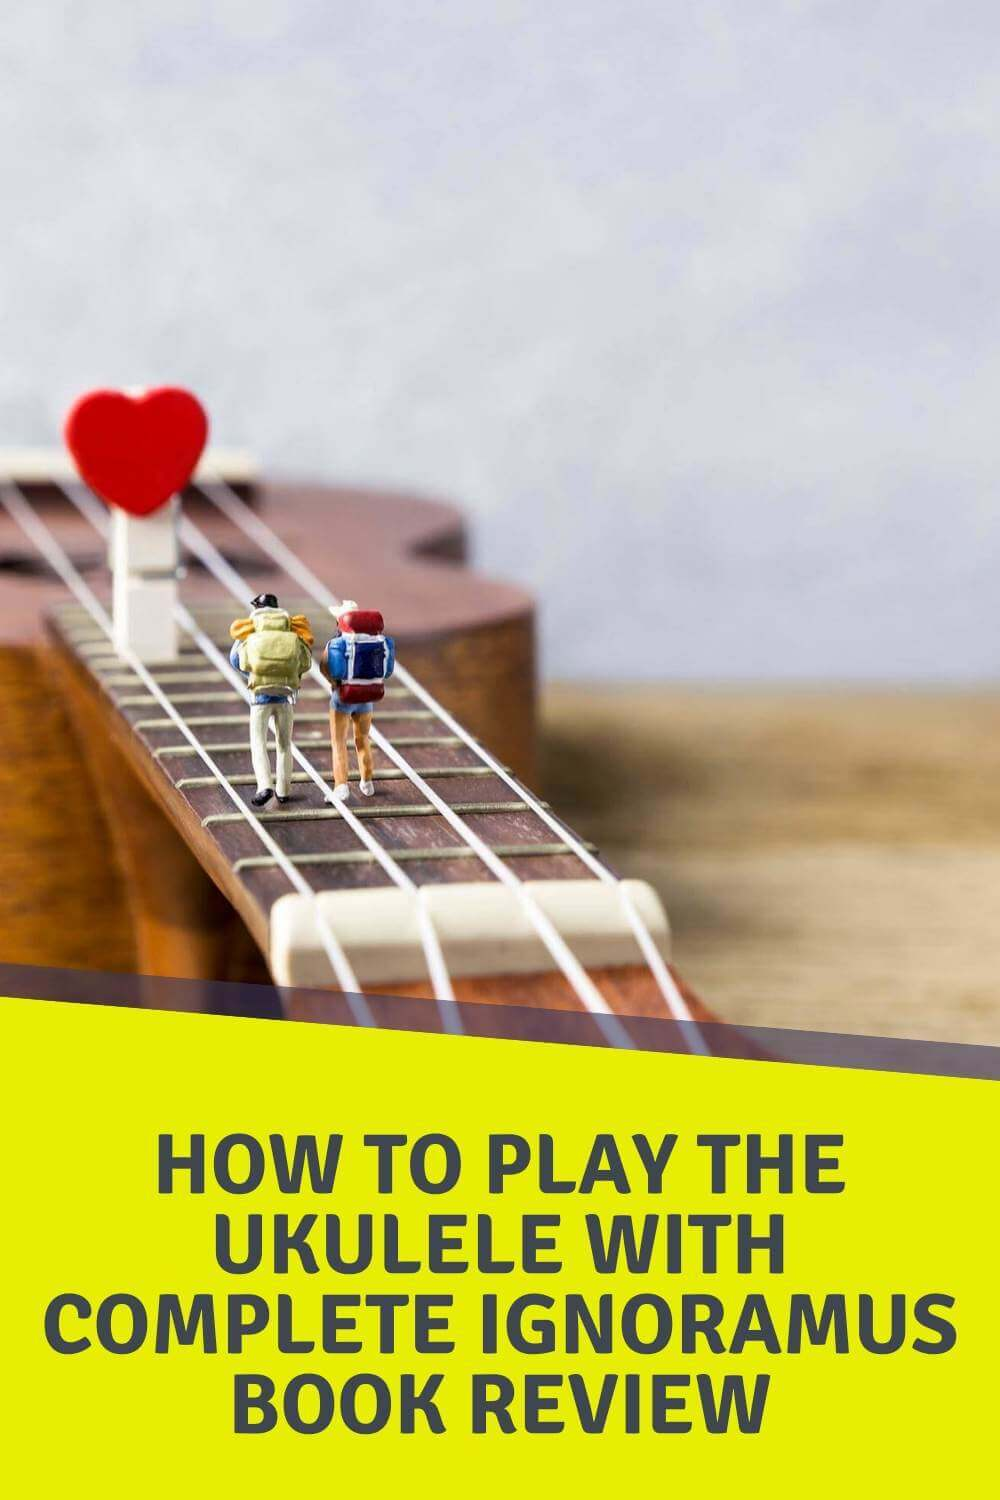 How to Play the Ukulele with Complete Ignoramus Book Review